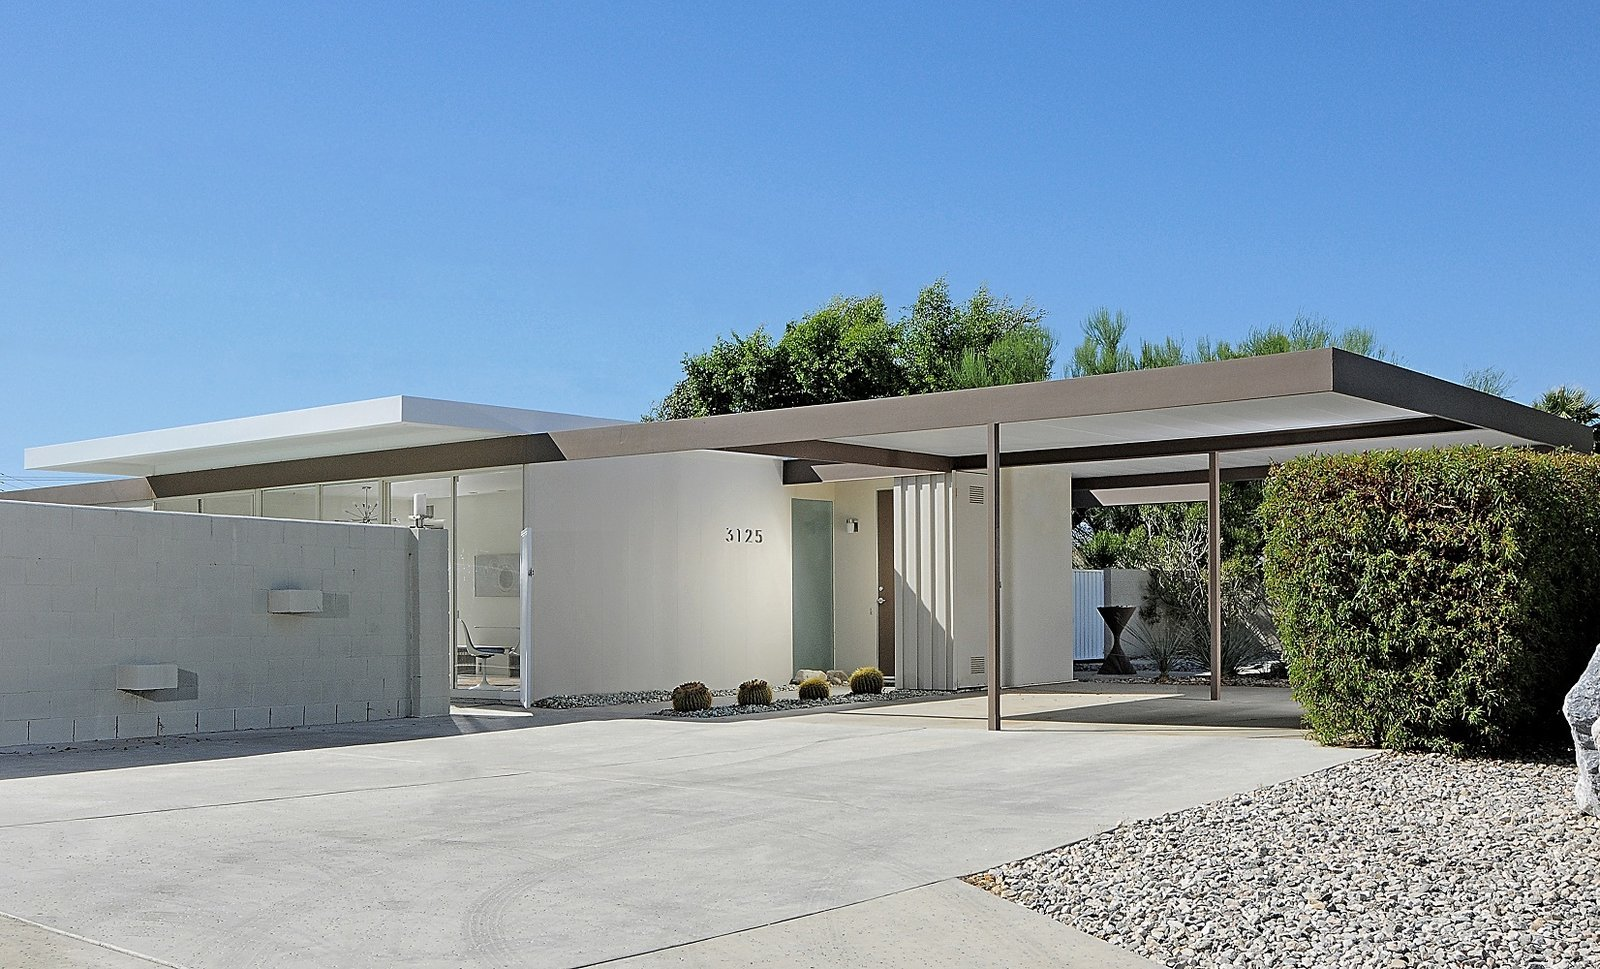 Wexler and Harrison's original plan was to create affordable vacation homes for a growing middle class. When this home first went on the market with the others in 1962, it was competitively priced between $13,000 and $17,000.